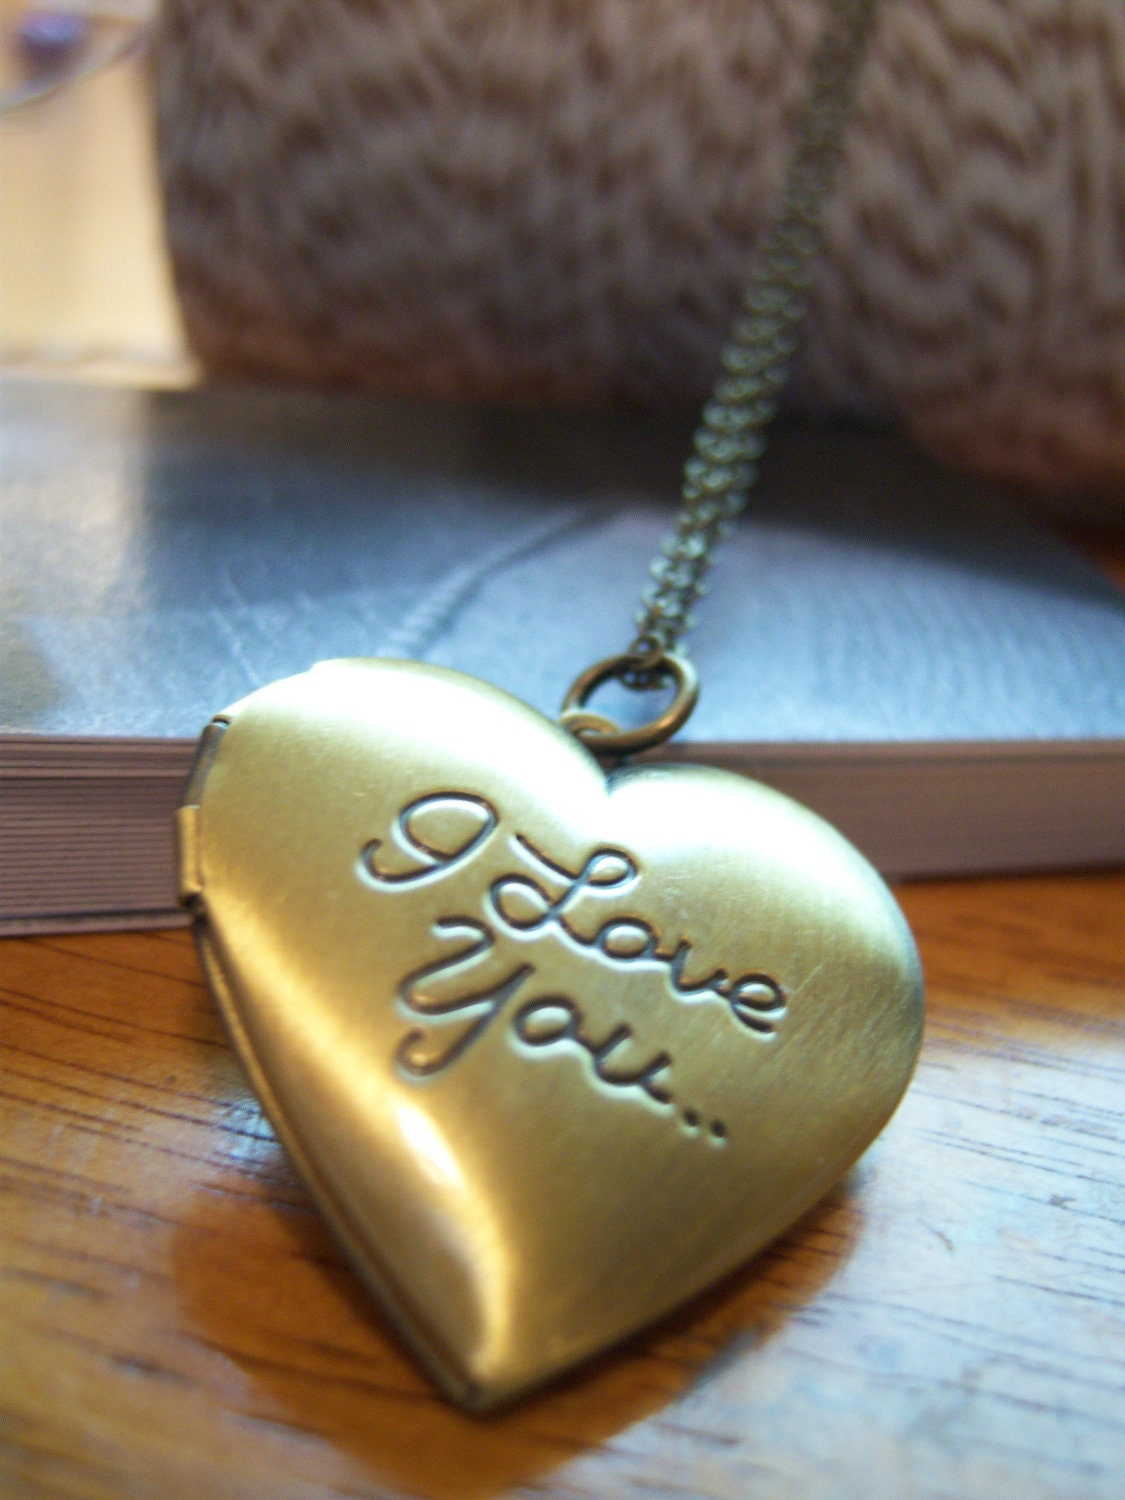 I Love You. Heart Locket. Locket. Brass Locket. Heart Necklace. Locket. Valentine. Love. Heart. Amor. Amore.